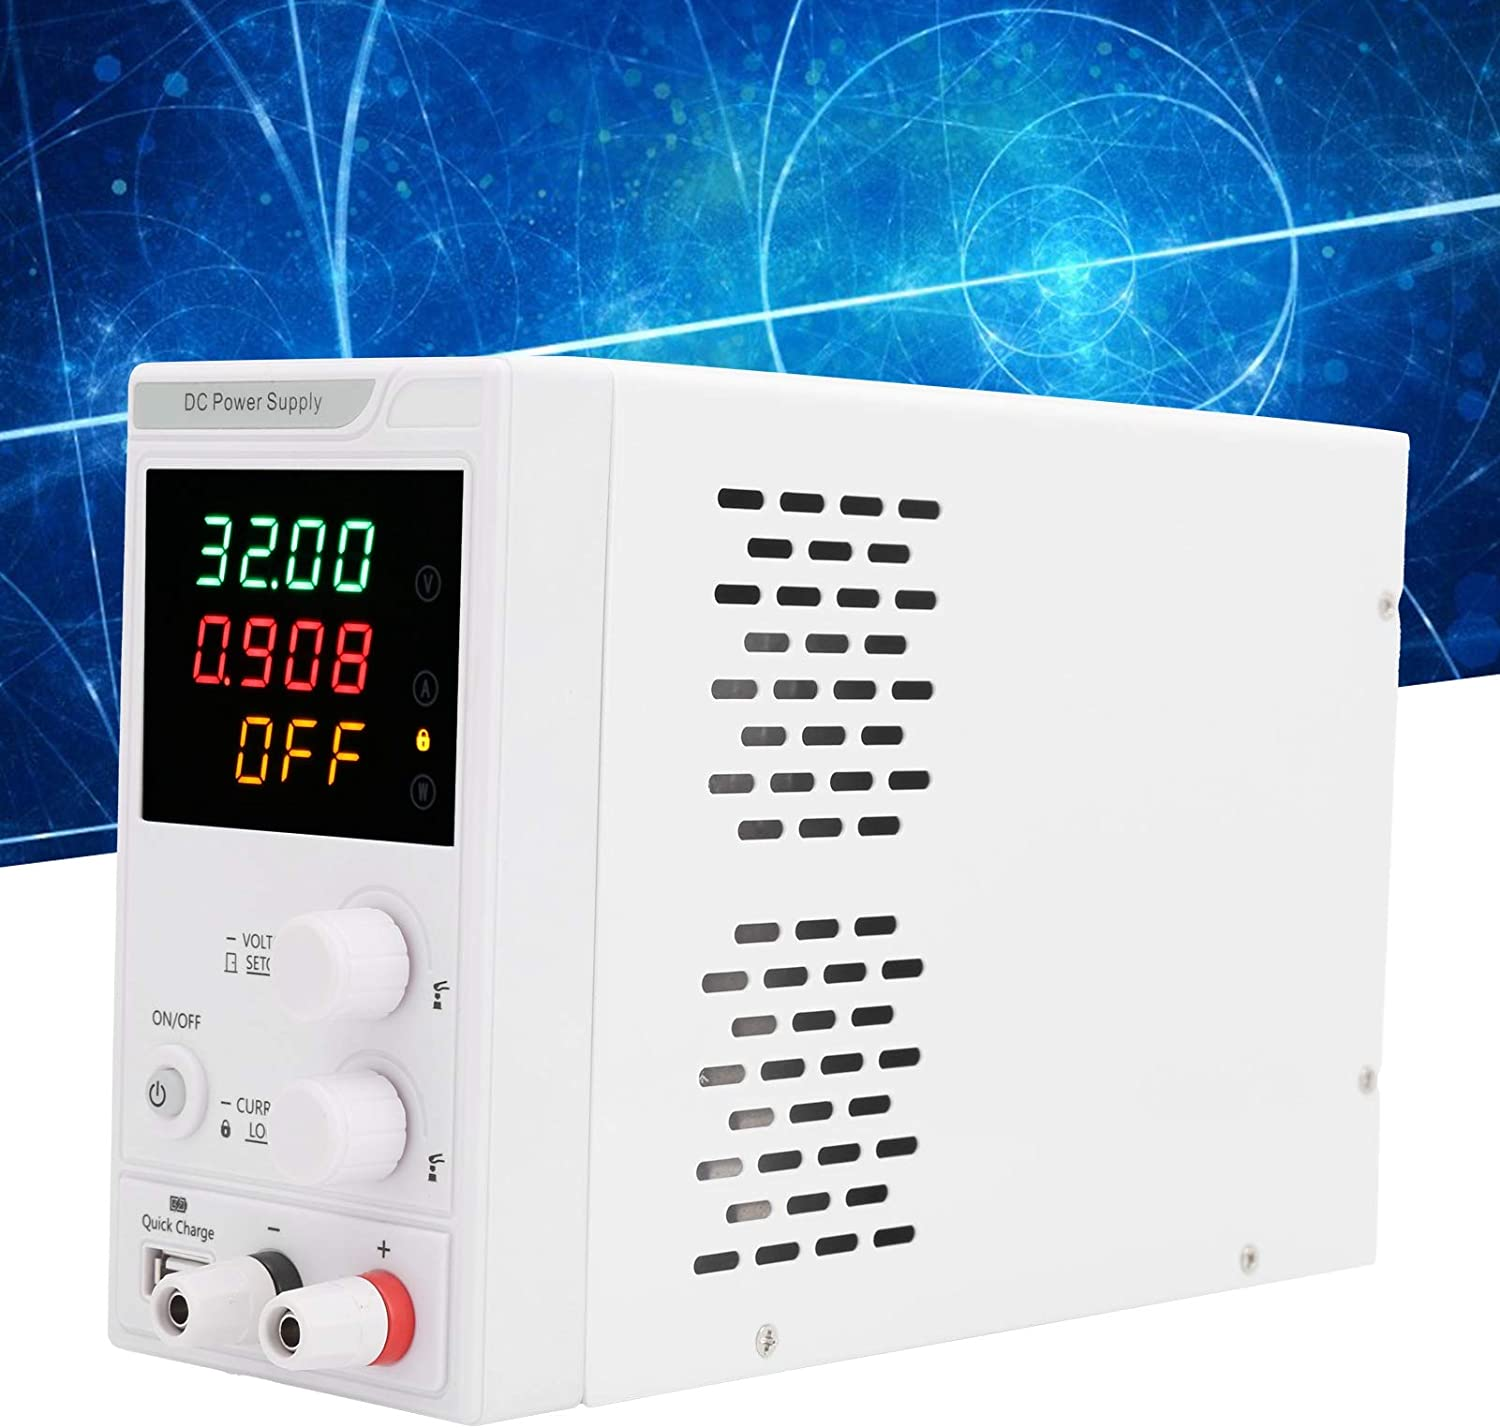 Demeras Max 60% OFF Micro Voltage Clearance SALE! Limited time! Regulation 30V Regulated DC Power Suppl 5A